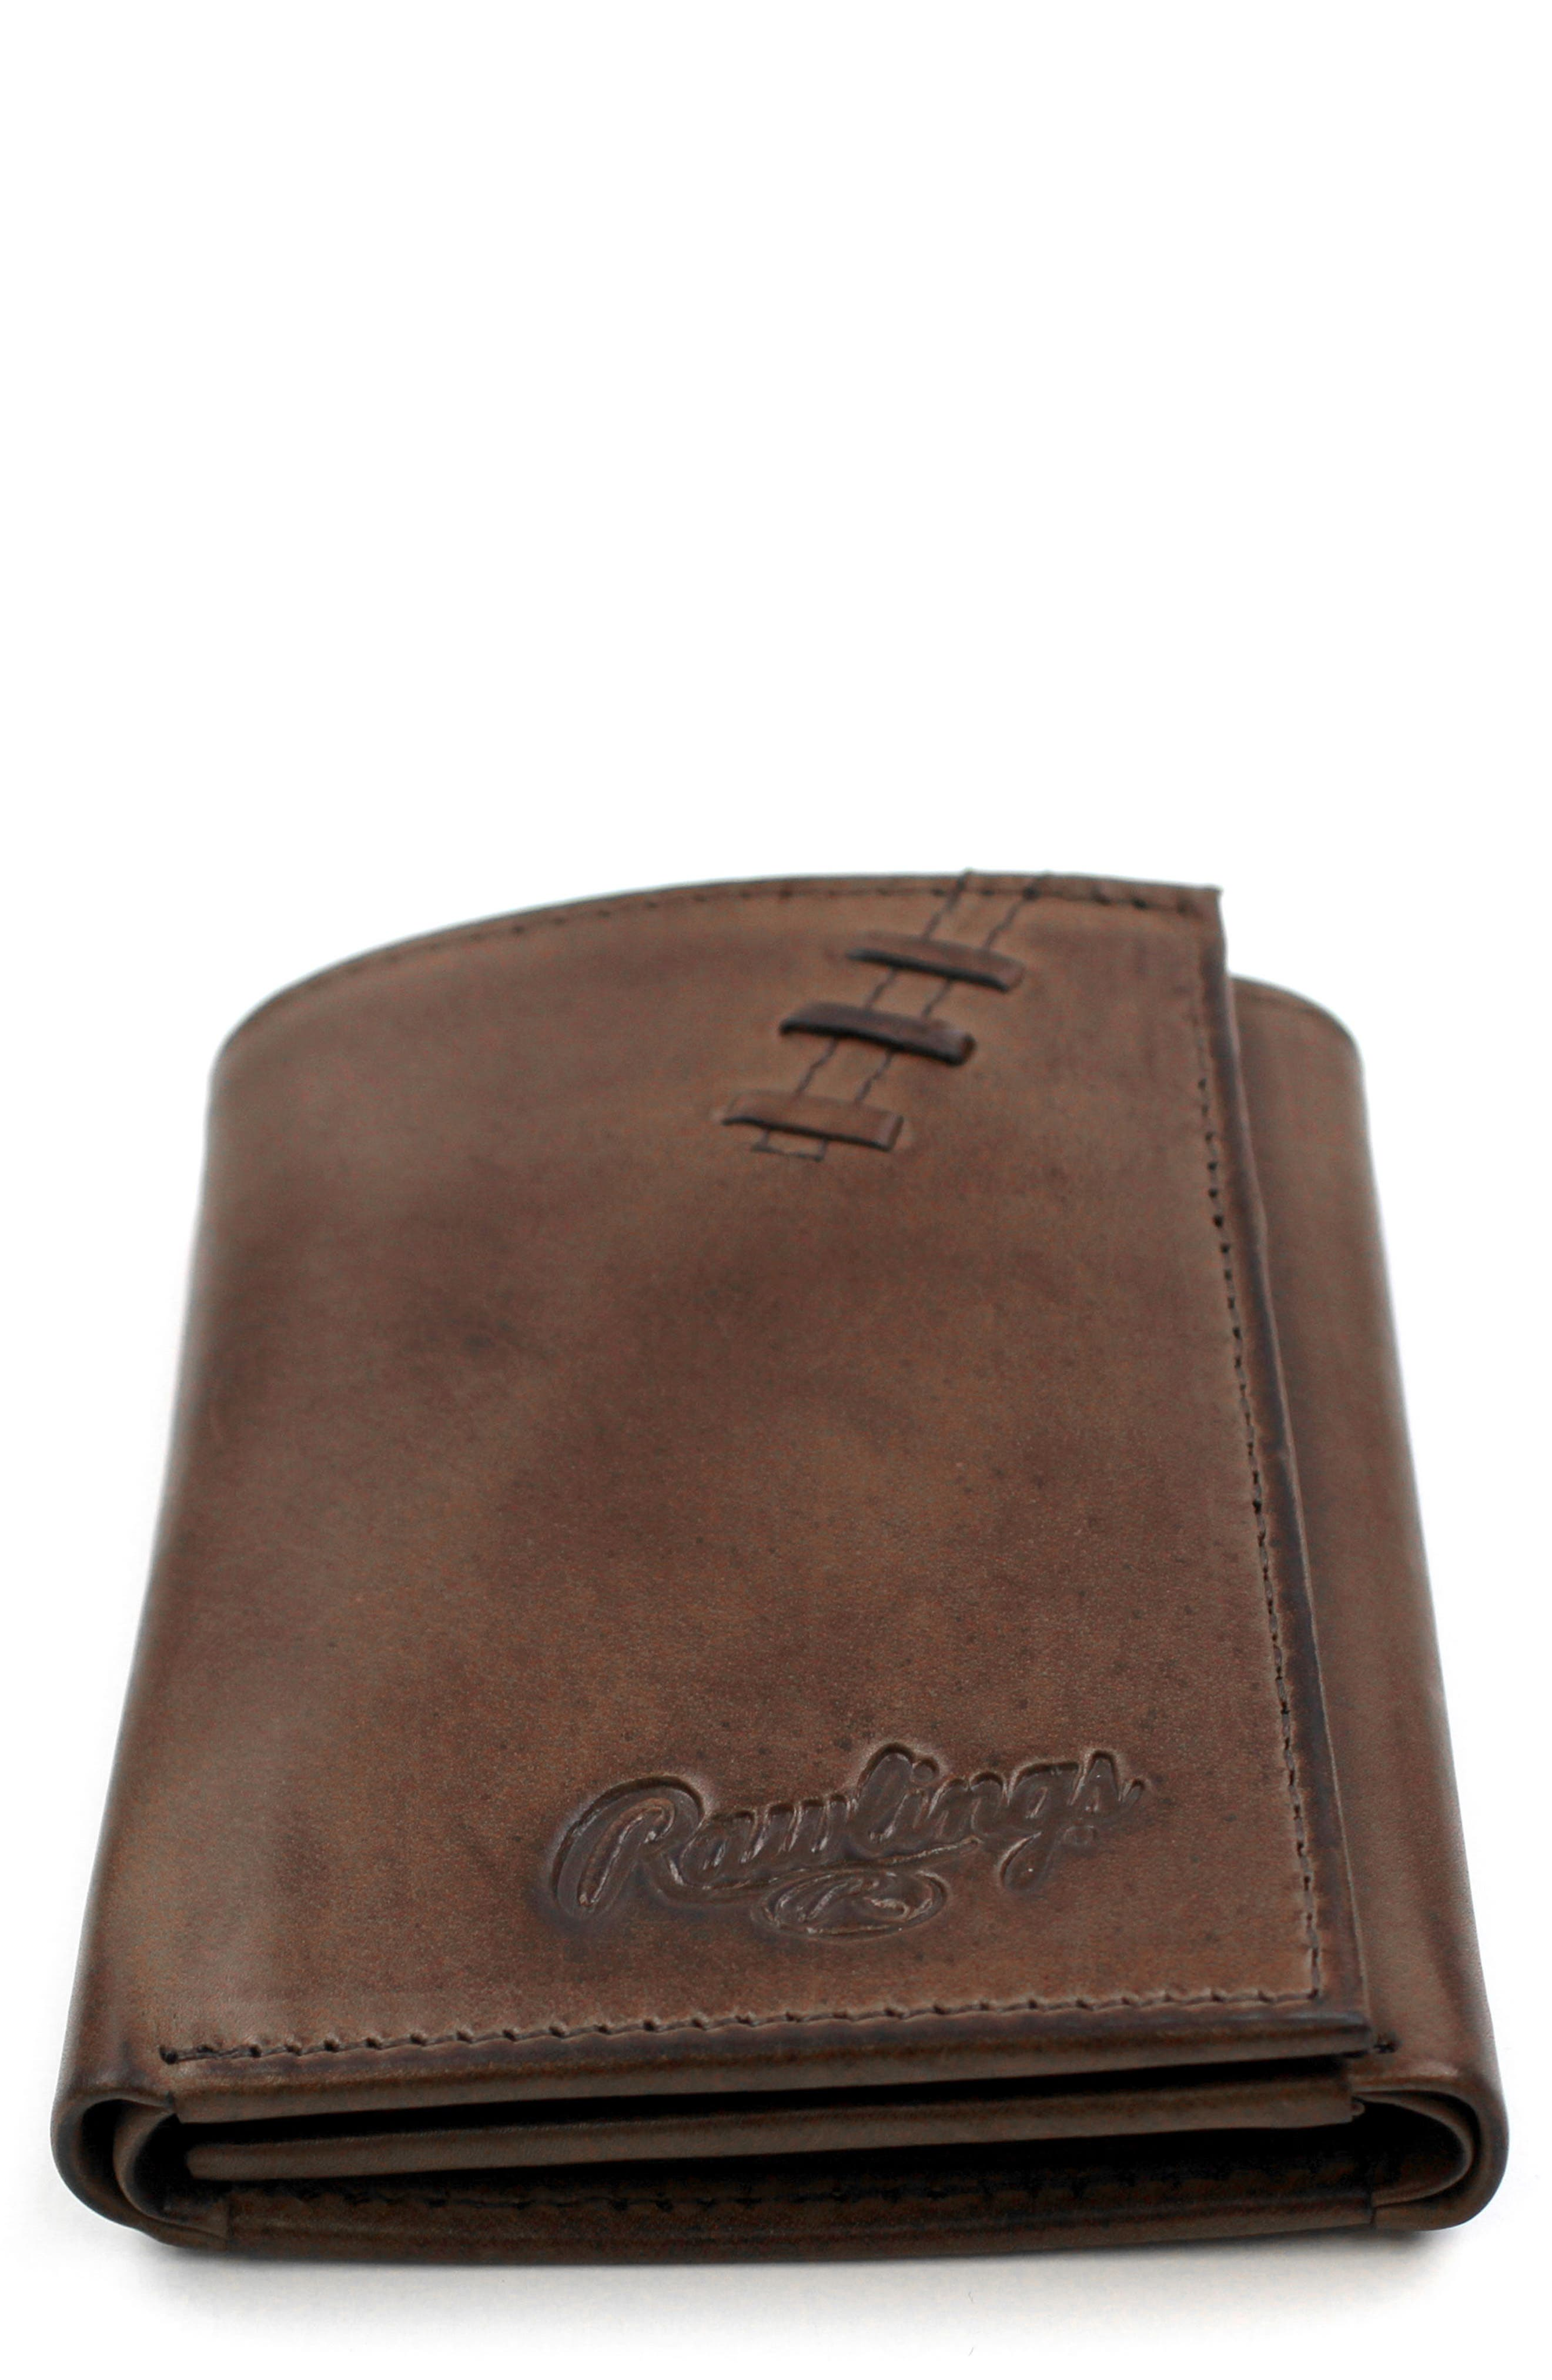 Rawlings Legacy Leather Wallet